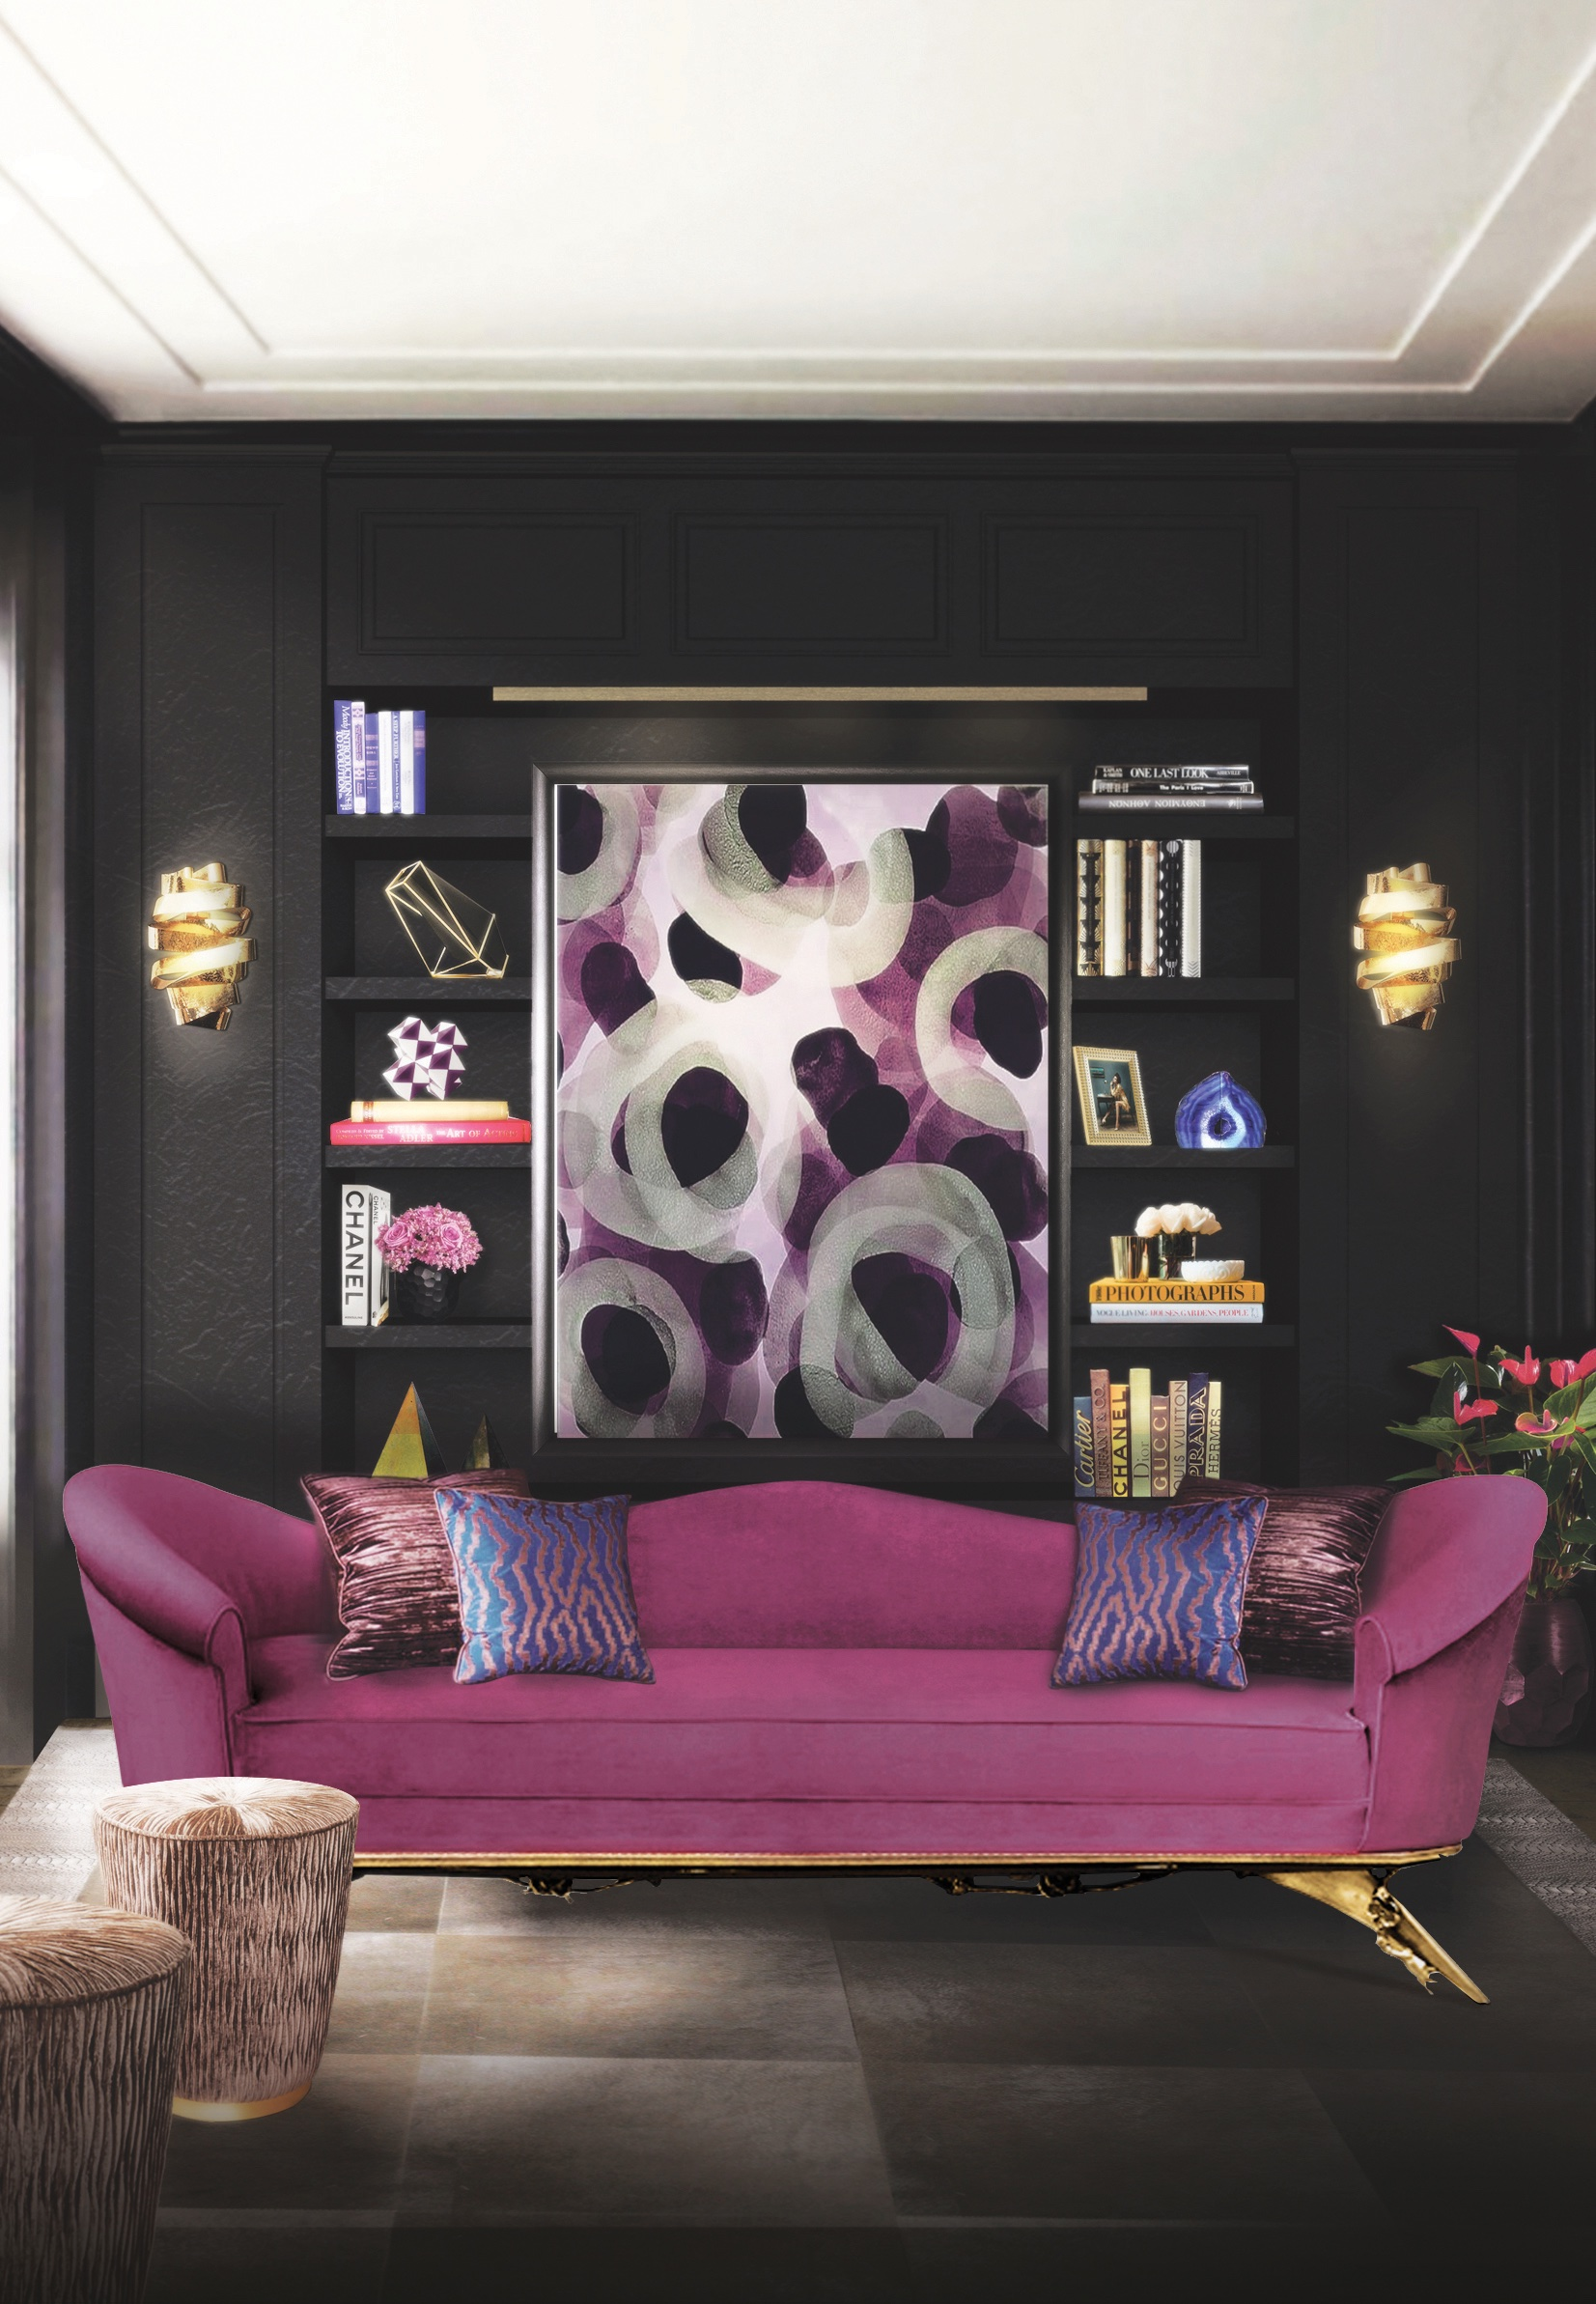 Colourful Sofas for your Living Room colourful sofas Colourful Sofas for your Living Room colette sofa tresor stool chloe sconce blackcobra rug koket projects